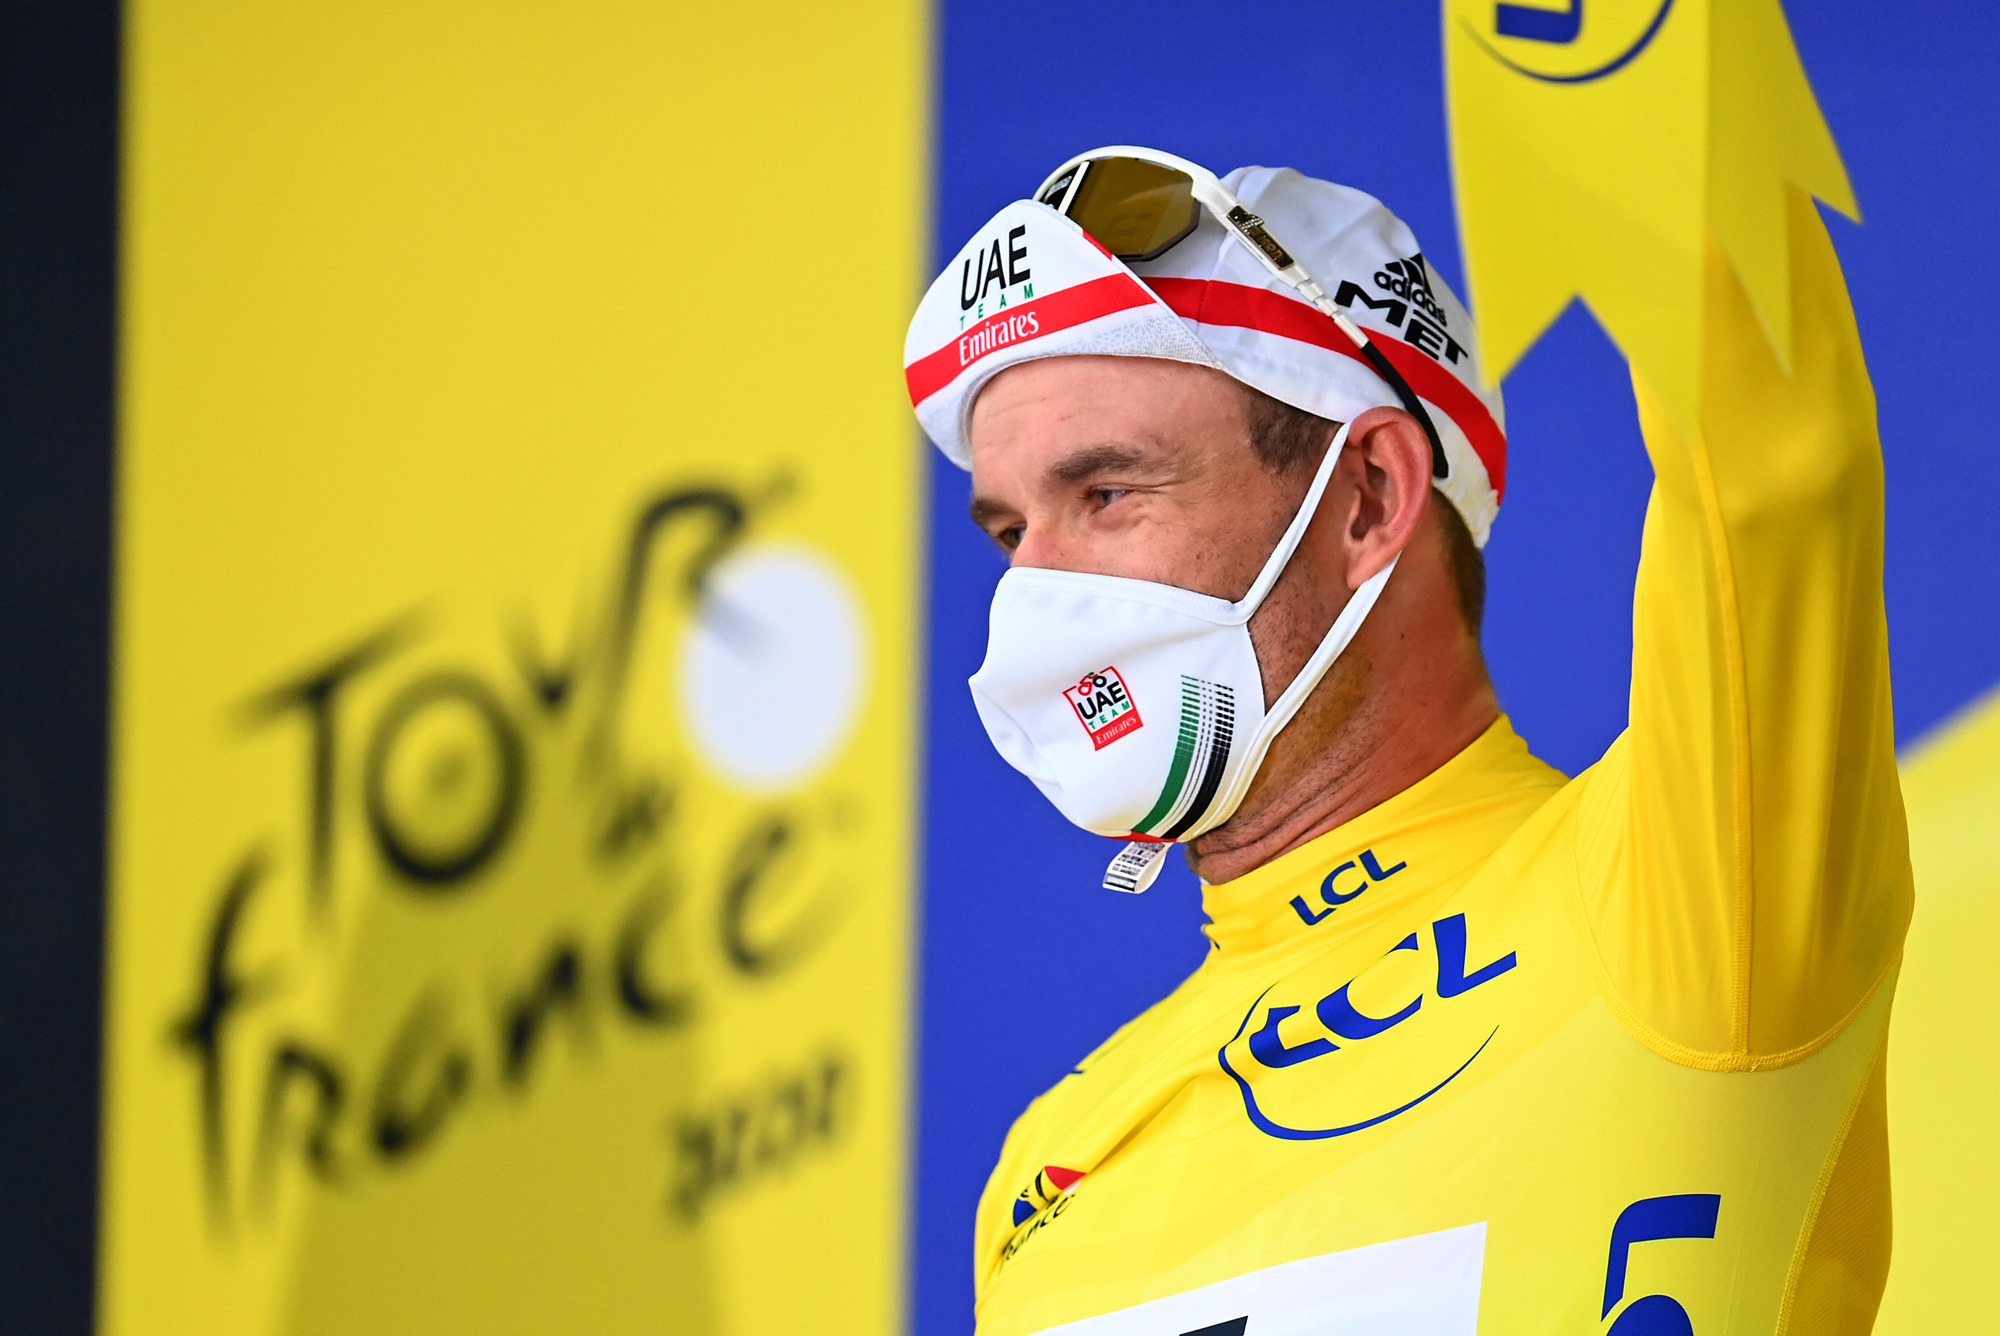 Tour de France 2020 107th Edition 1st stage Nice Nice 156 km 29082020 Alexander Kristoff NOR UAE Team Emirates photo POOL Vincent KalutPNBettiniPhoto2020